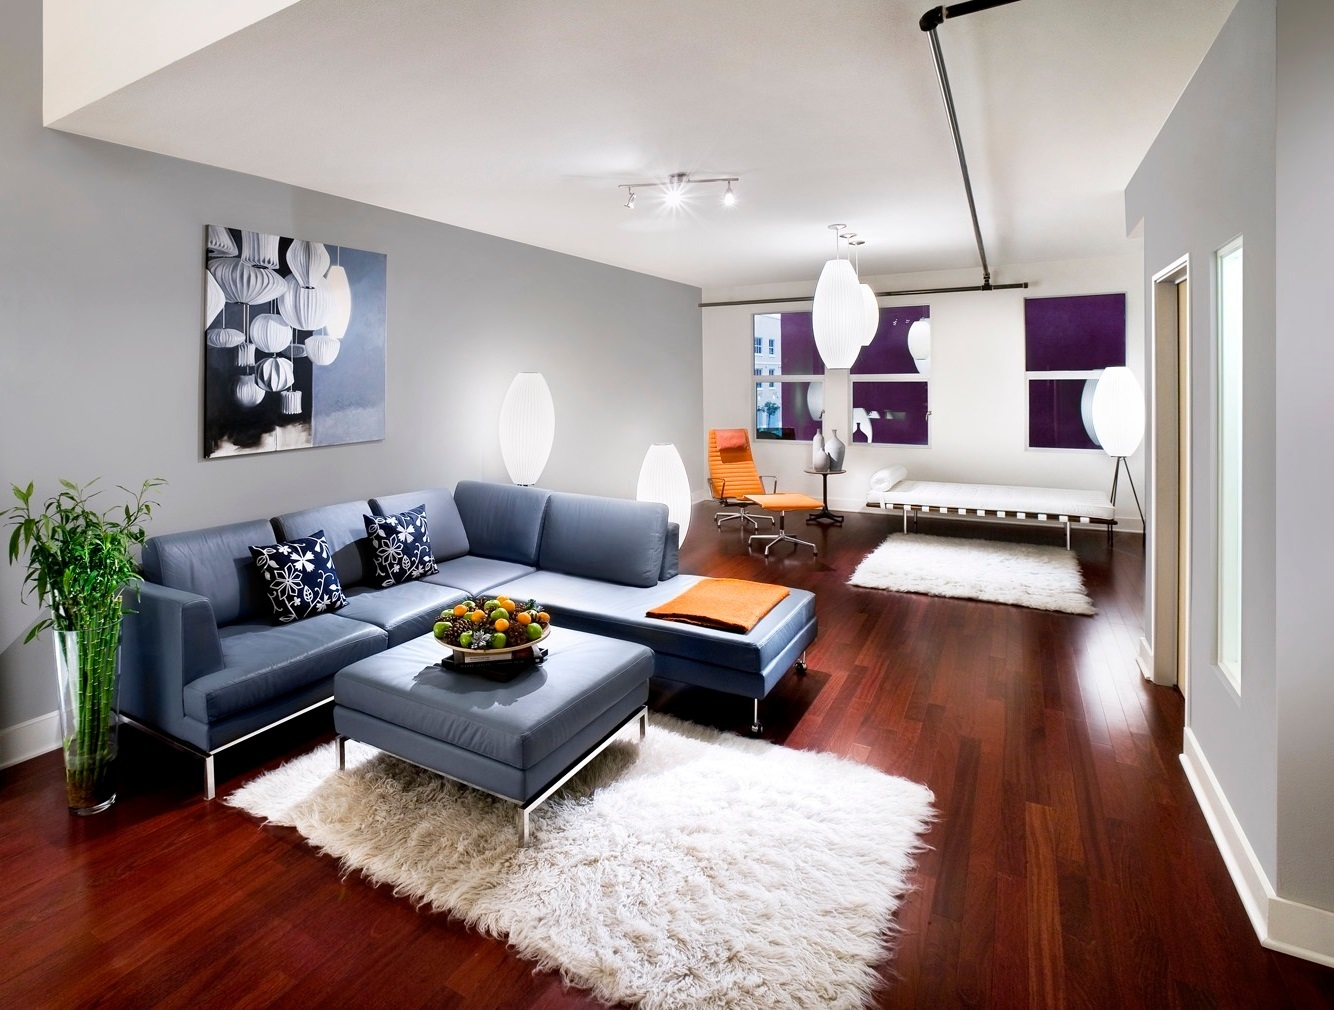 stunning living room design ideas on a budget gallery home